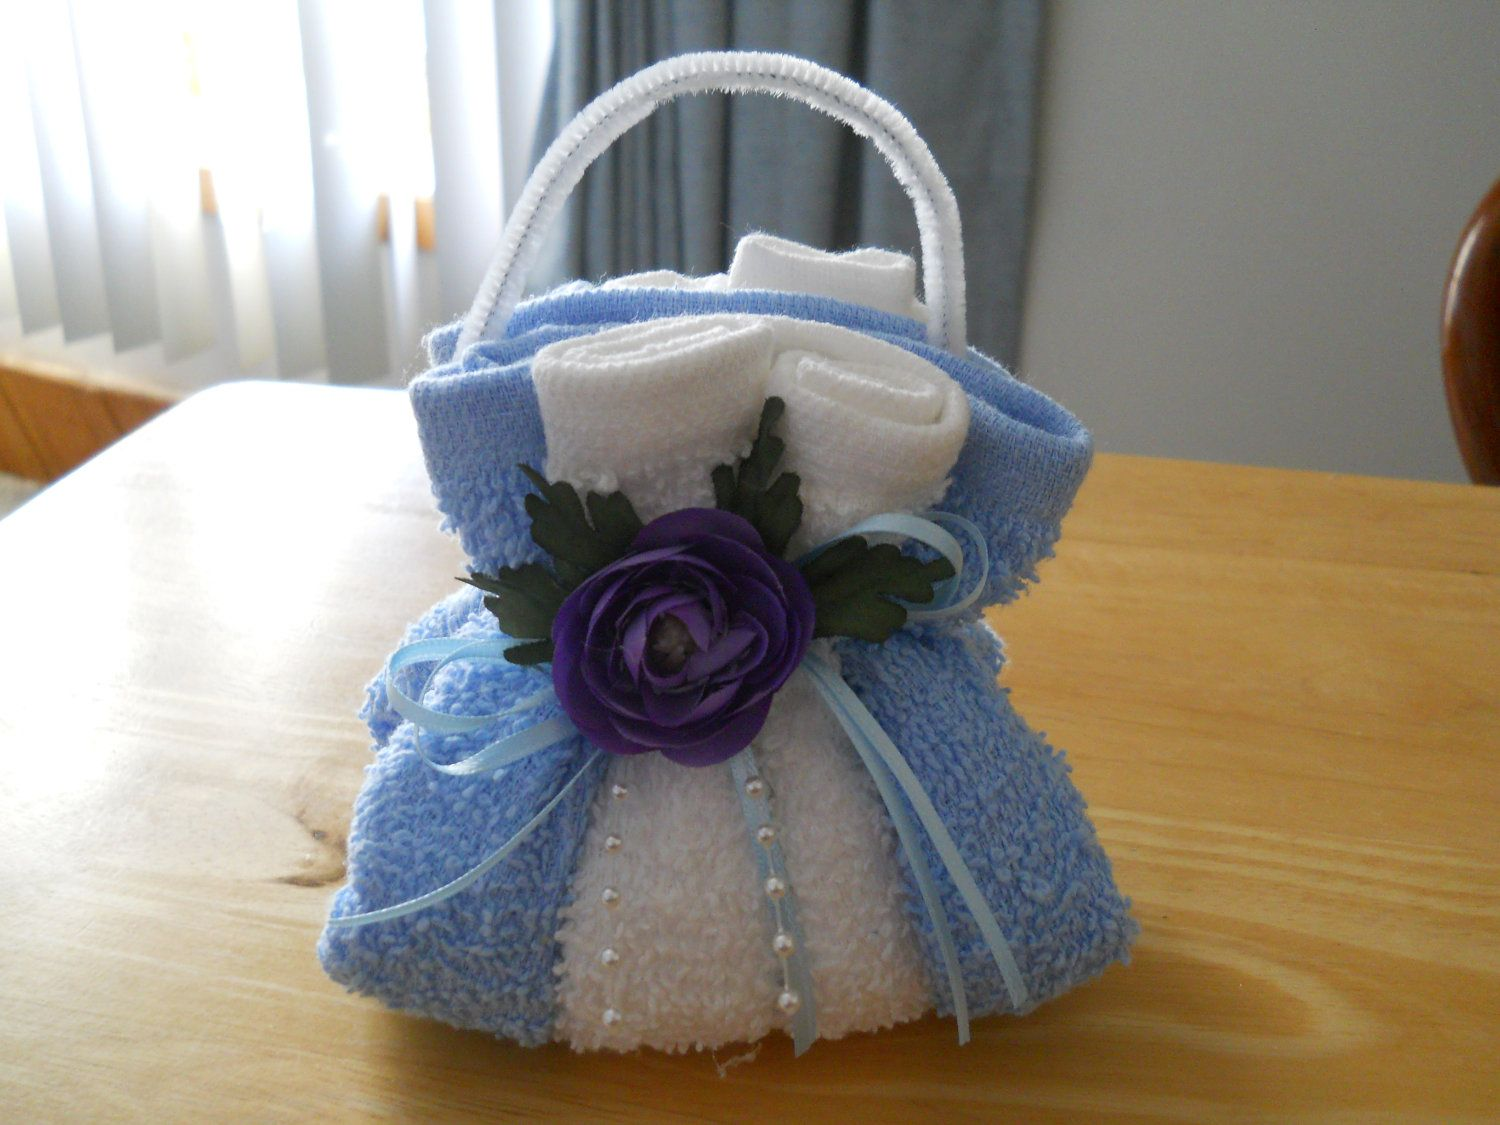 Wash Cloth Craft Ideas